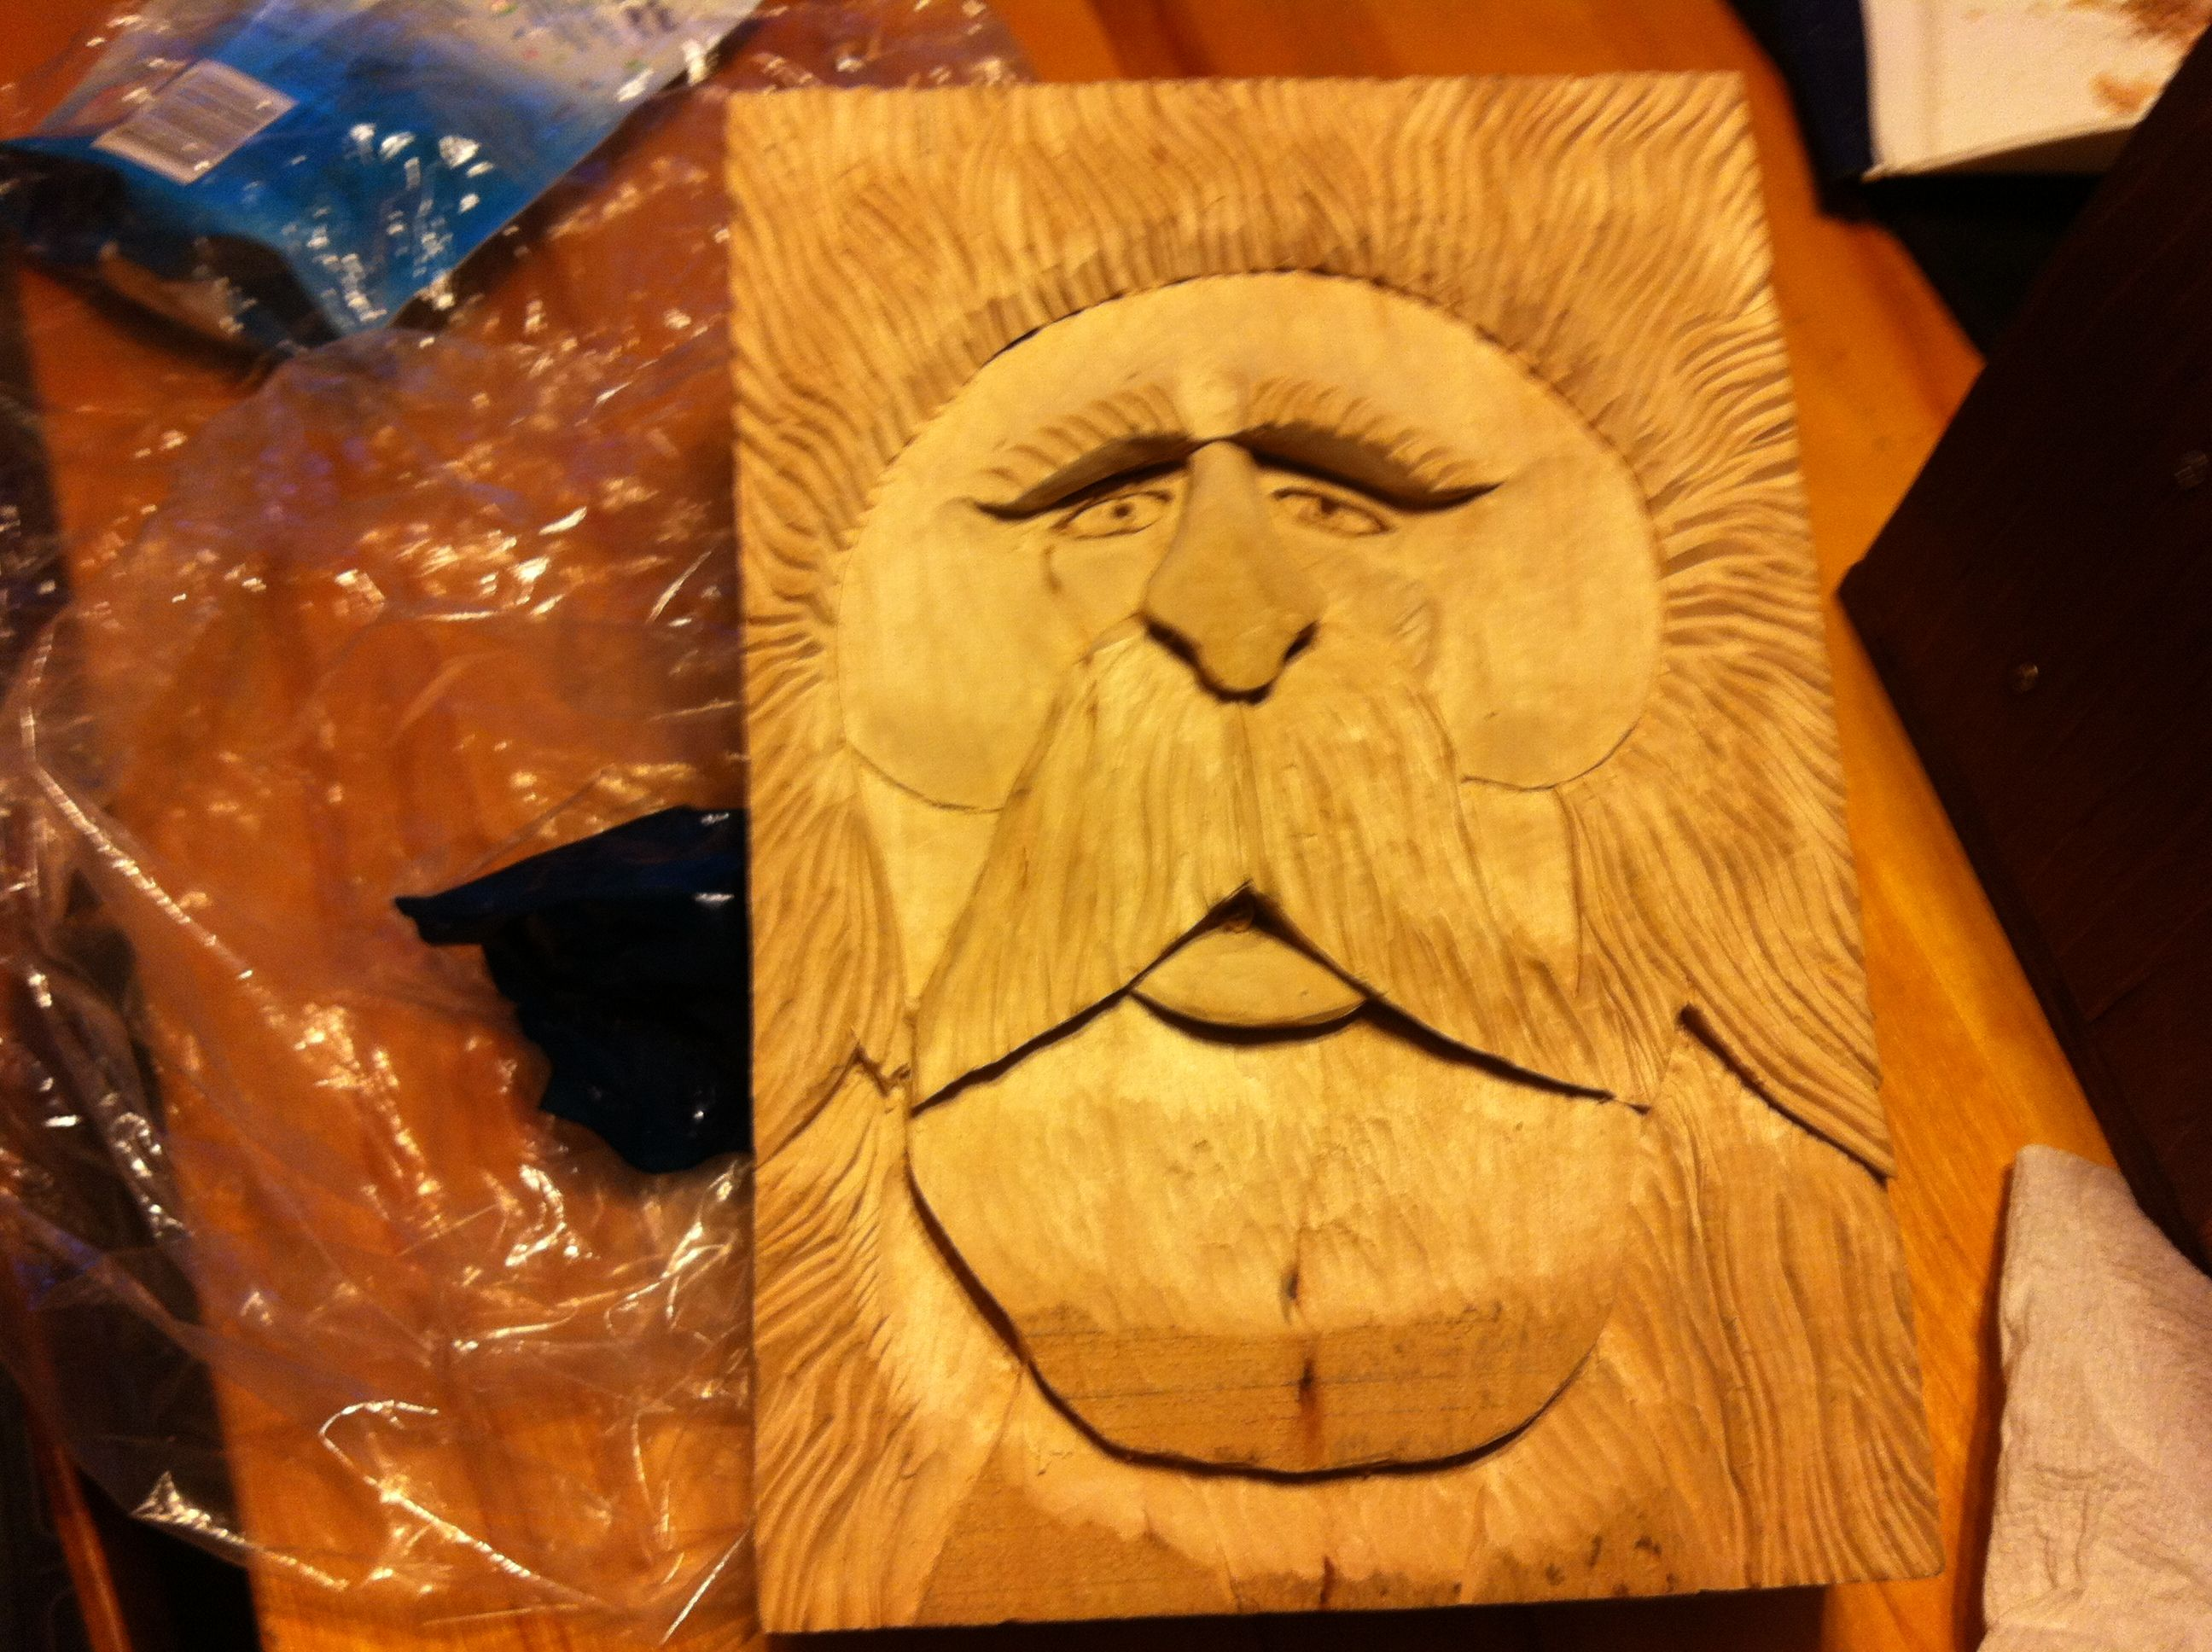 MY WOOD CARVING